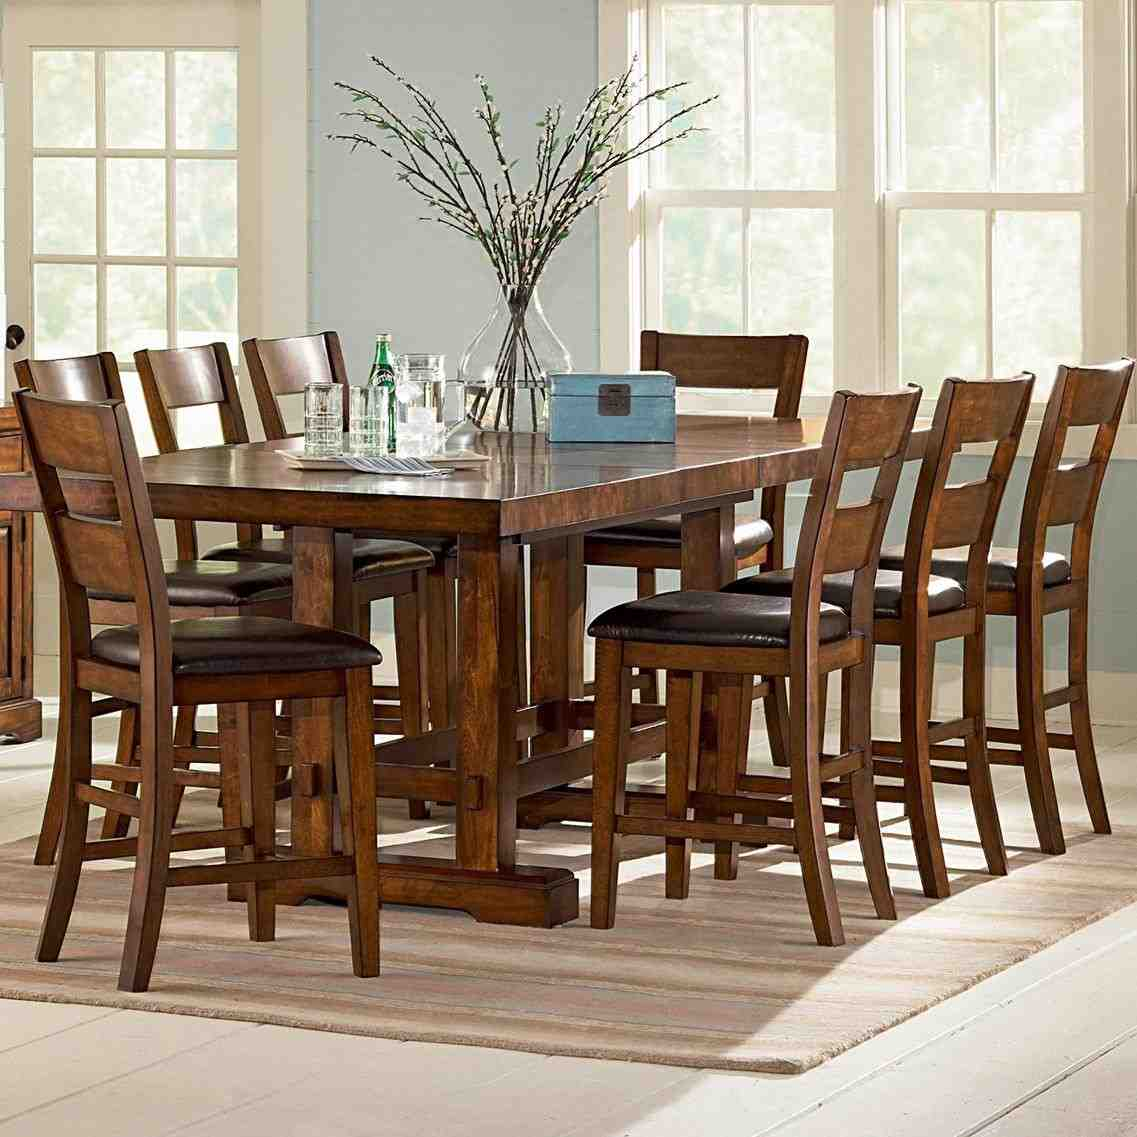 High top dining table with 8 chairs home furniture design for High dining table